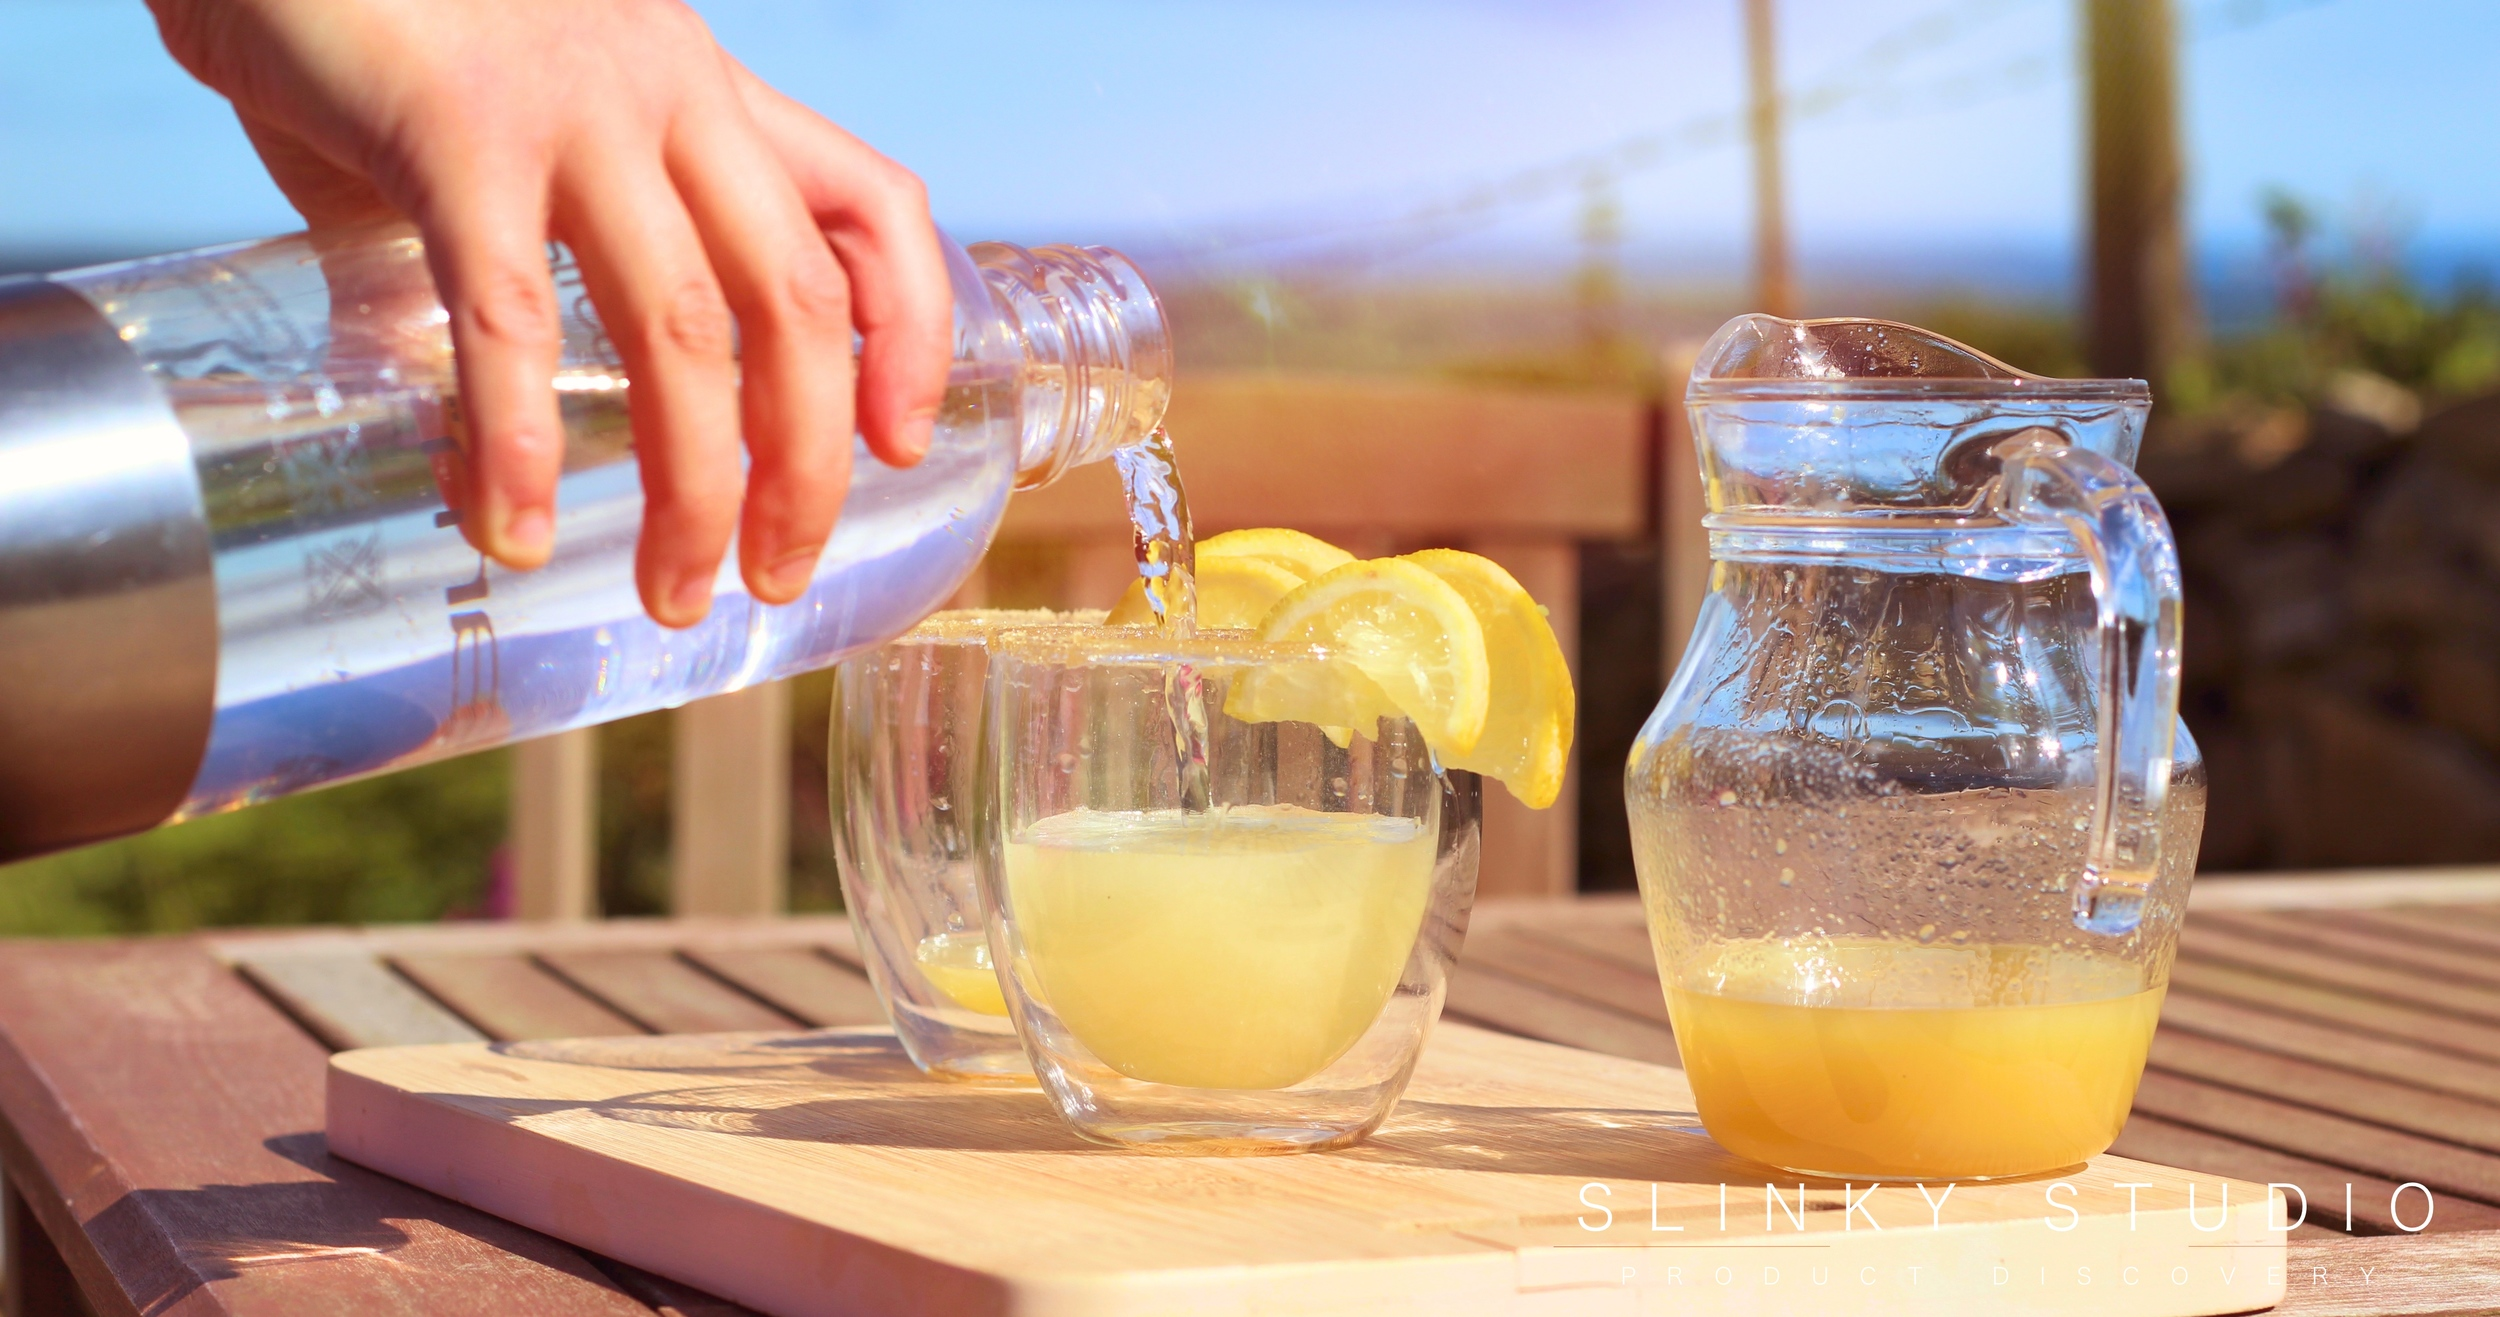 Optimum ThermoCook Ginger Beer SodaStream Being Poured On Bench in Sun.jpg